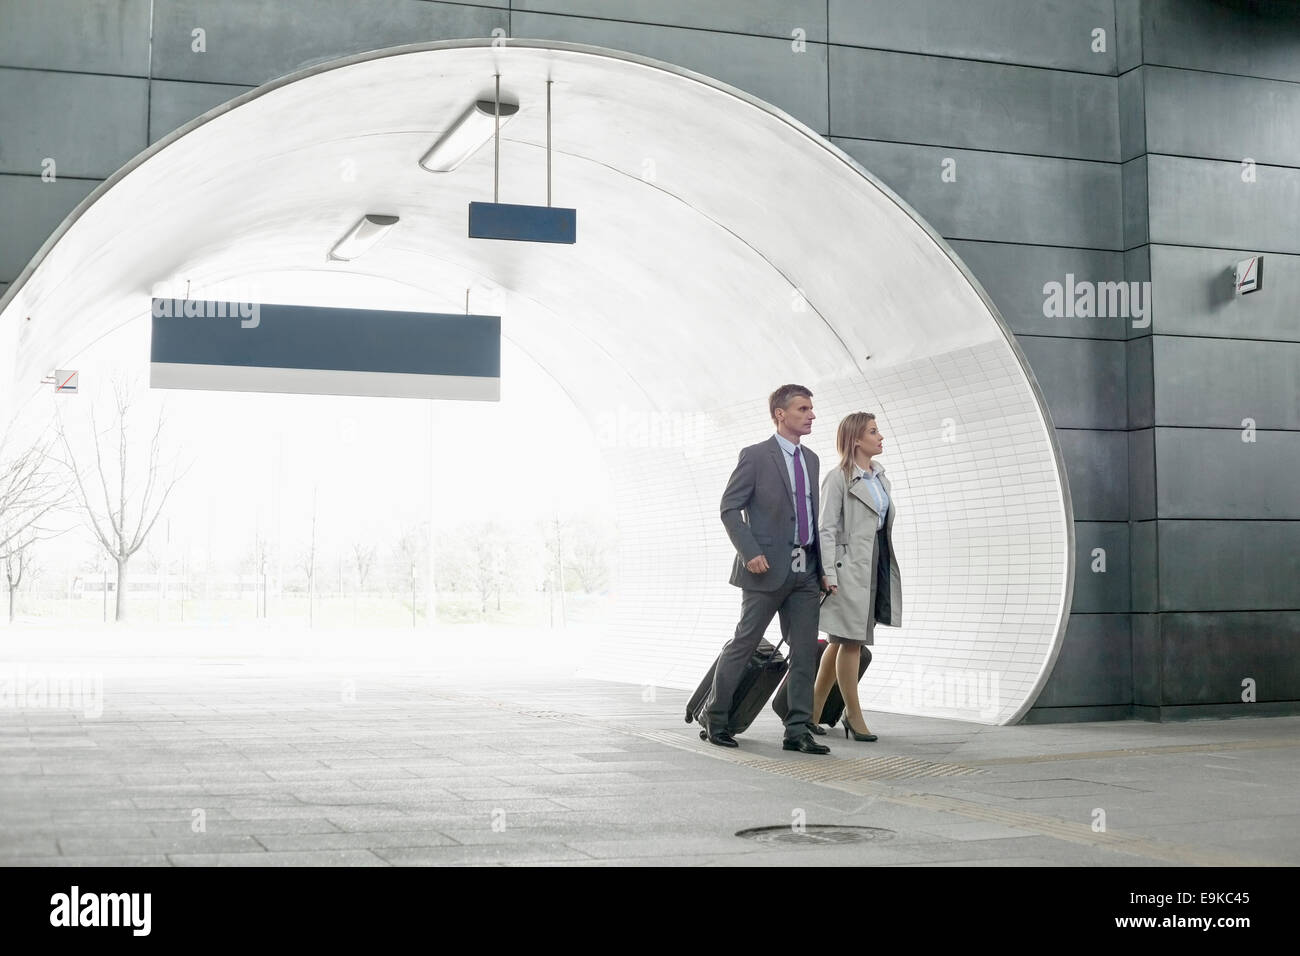 Businessman and businesswoman entering railroad station - Stock Image